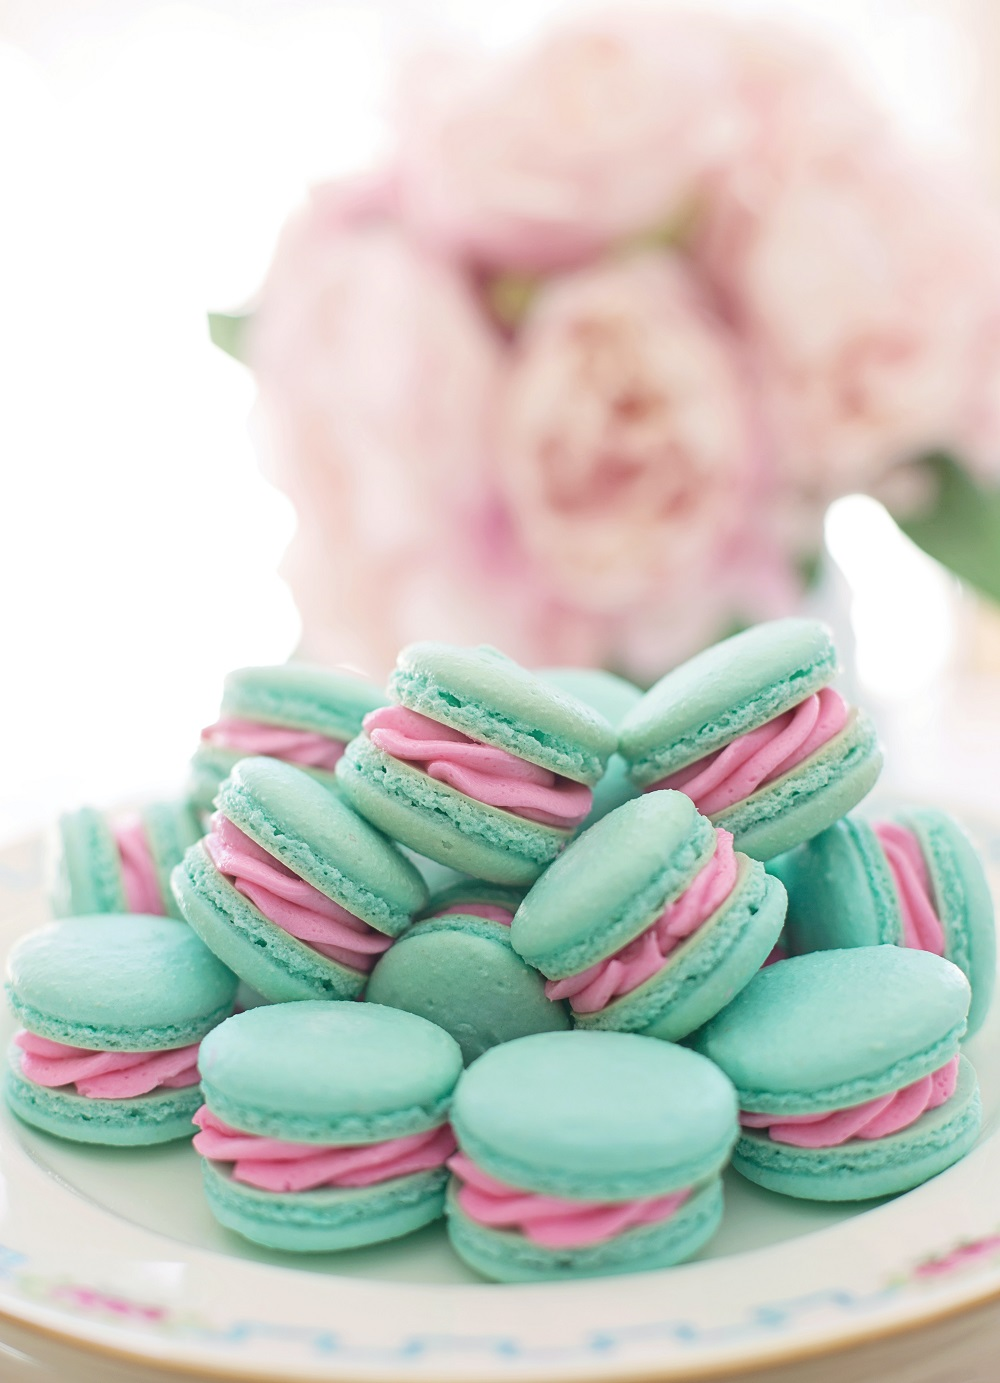 Pastel coloured macarons